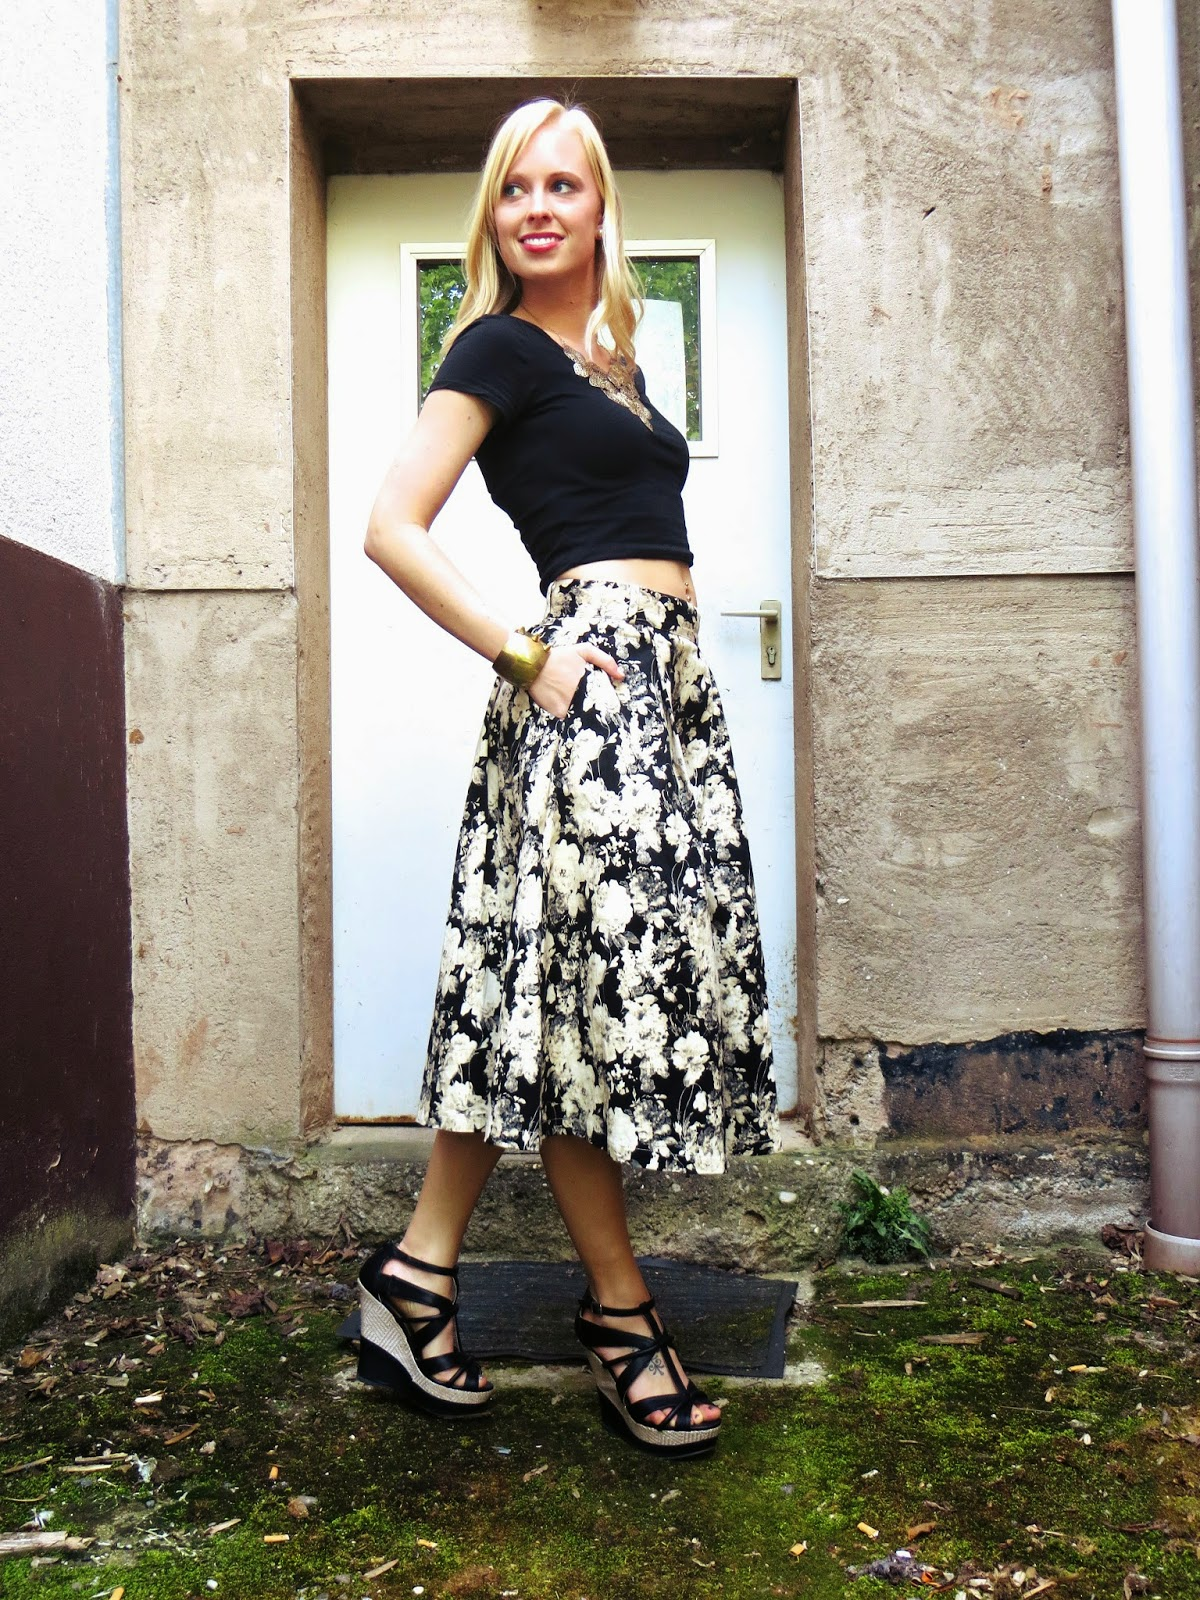 deb, deb shops, deb shops on me, #debshops, deb black crop top, floral skirt, chicwish vintage floral skirt, chic nova stud bracelet, summer outfit ideas, memorial day weekend outfit ideas, bbq outfit ideas